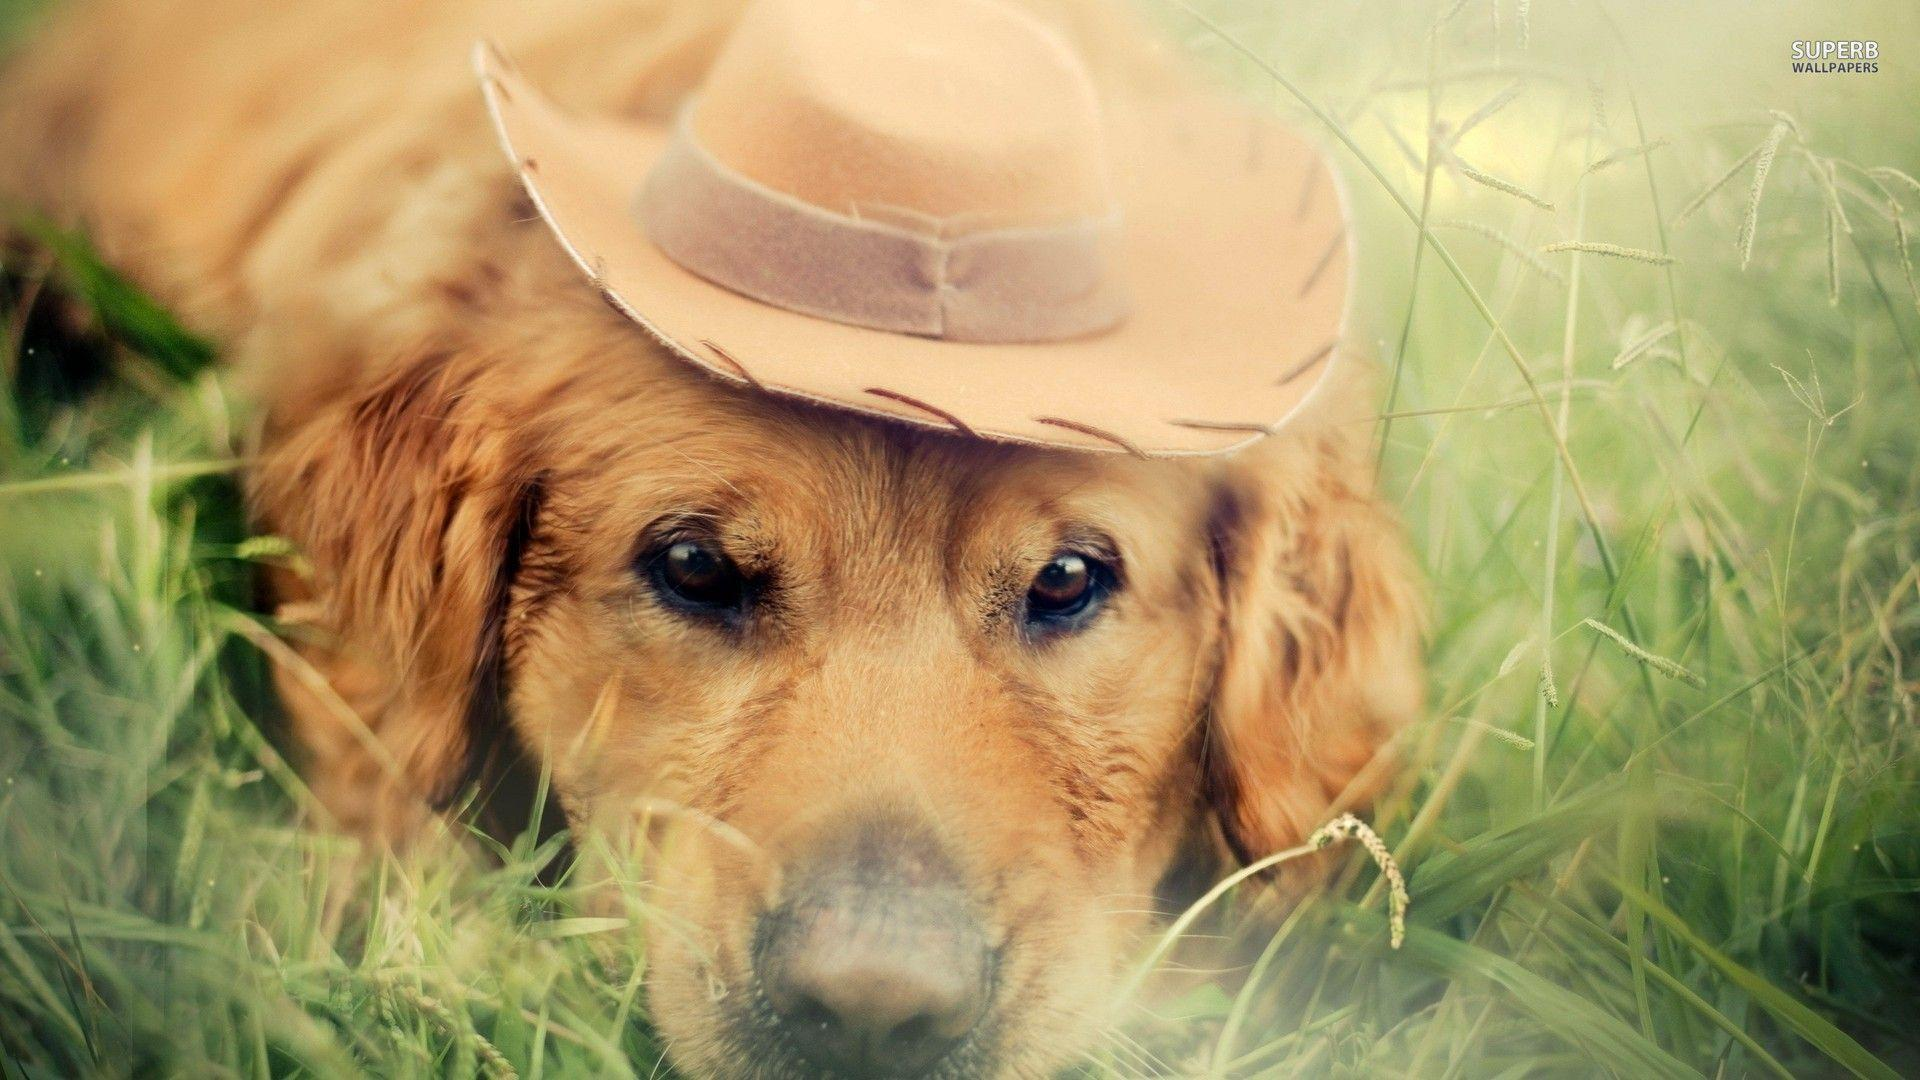 Golden retriever with a cowboy hat wallpaper - Animal wallpapers - #